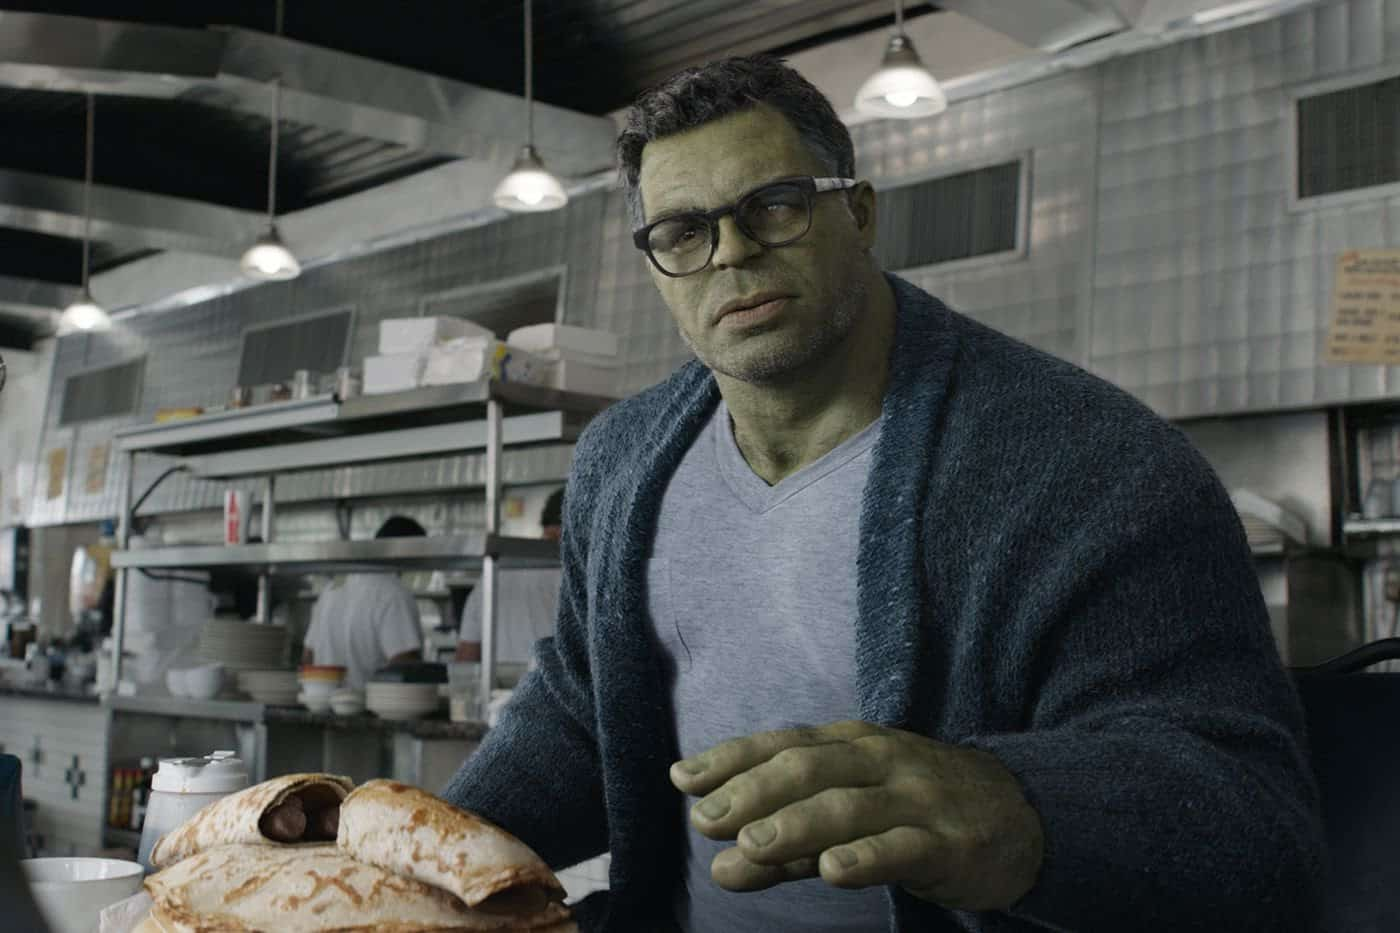 Smart Hulk was a huge challenge for the Marvel creative team. Pic courtesy: polygon.com